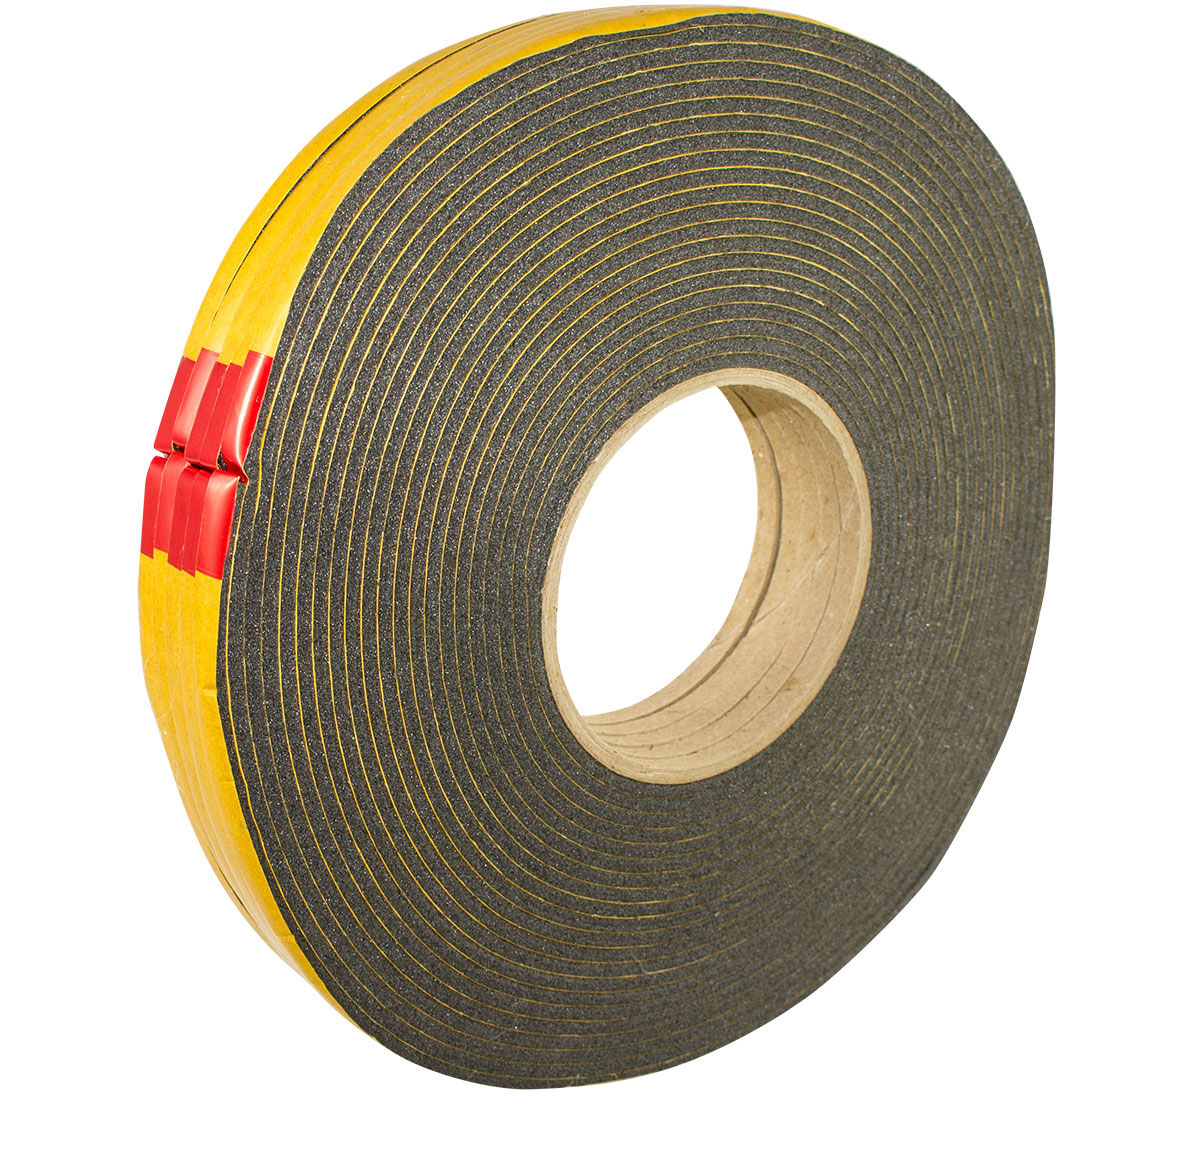 Insulating and sealing tape for doors and windows